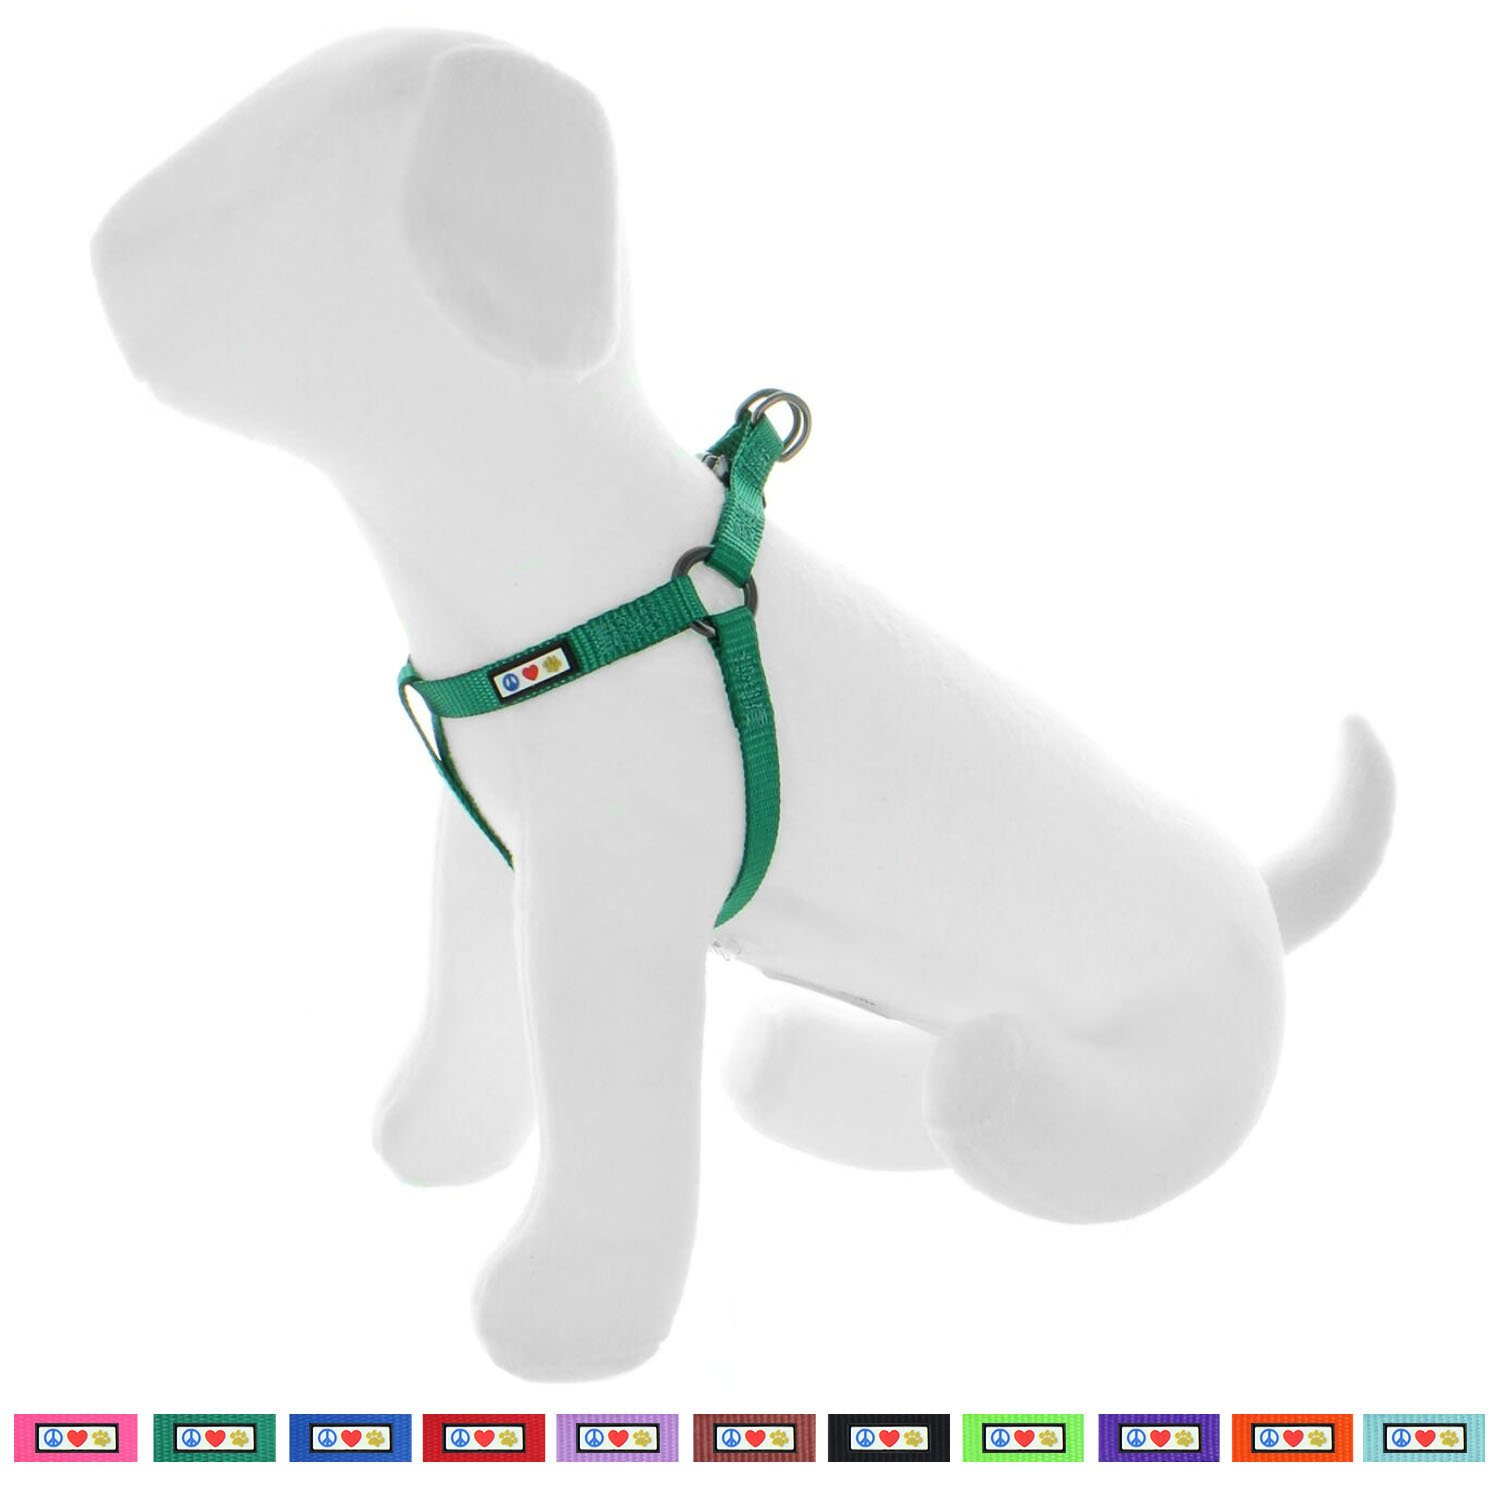 Pawtitas Pet Solid Color Step In Dog Harness, Step in or Vest Harness, Comfort Control, Training Walking of your Puppy/Dog Small Dog Harness S Dog Harness Lush Green